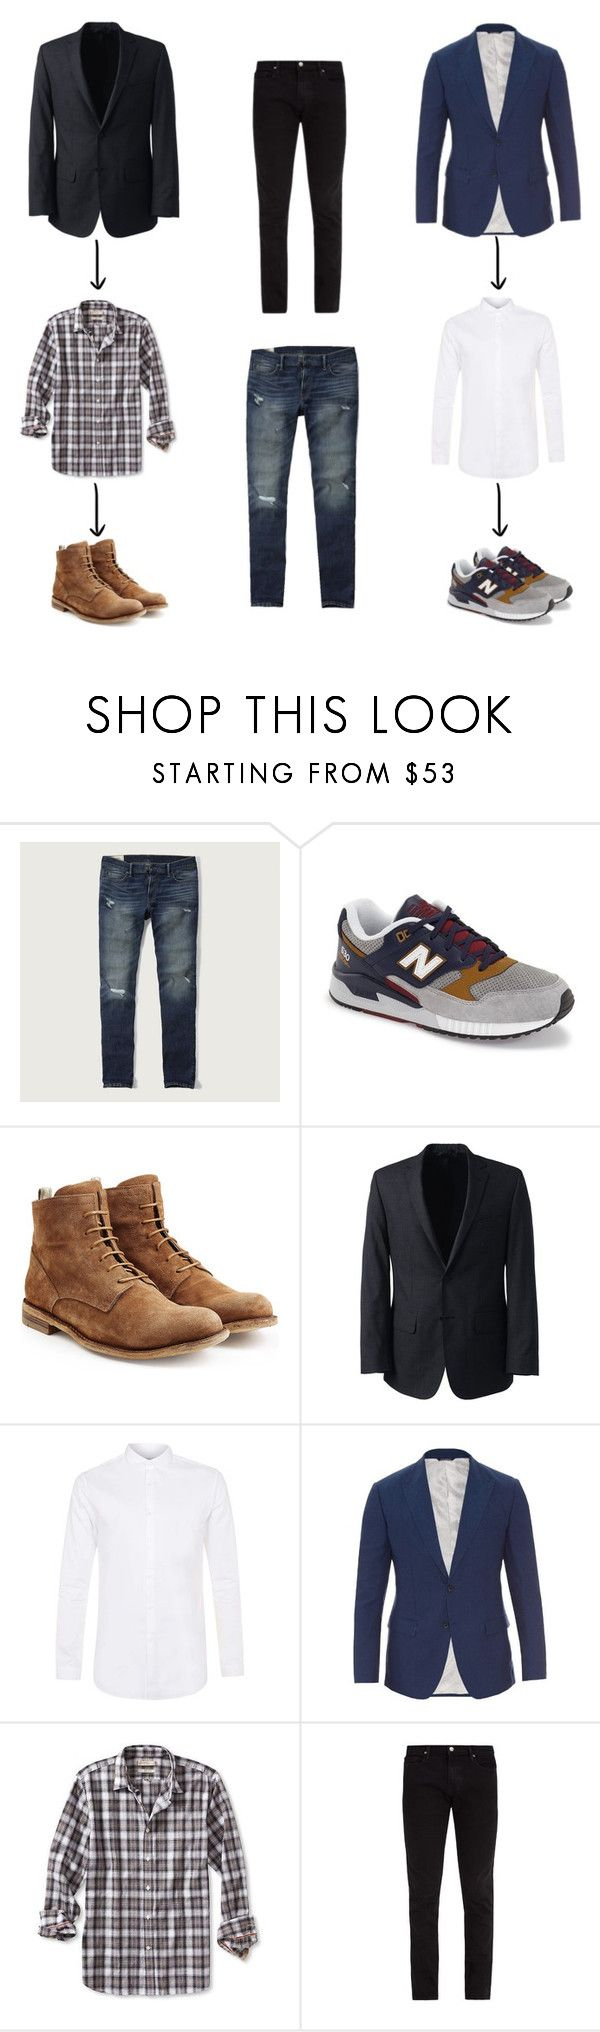 """fin de semana hombre"" by natyapshopper on Polyvore featuring Abercrombie & Fitch, New Balance, Officine Creative, Lands' End, Topman, Dolce&Gabbana, Banana Republic, Frame, men's fashion y menswear"